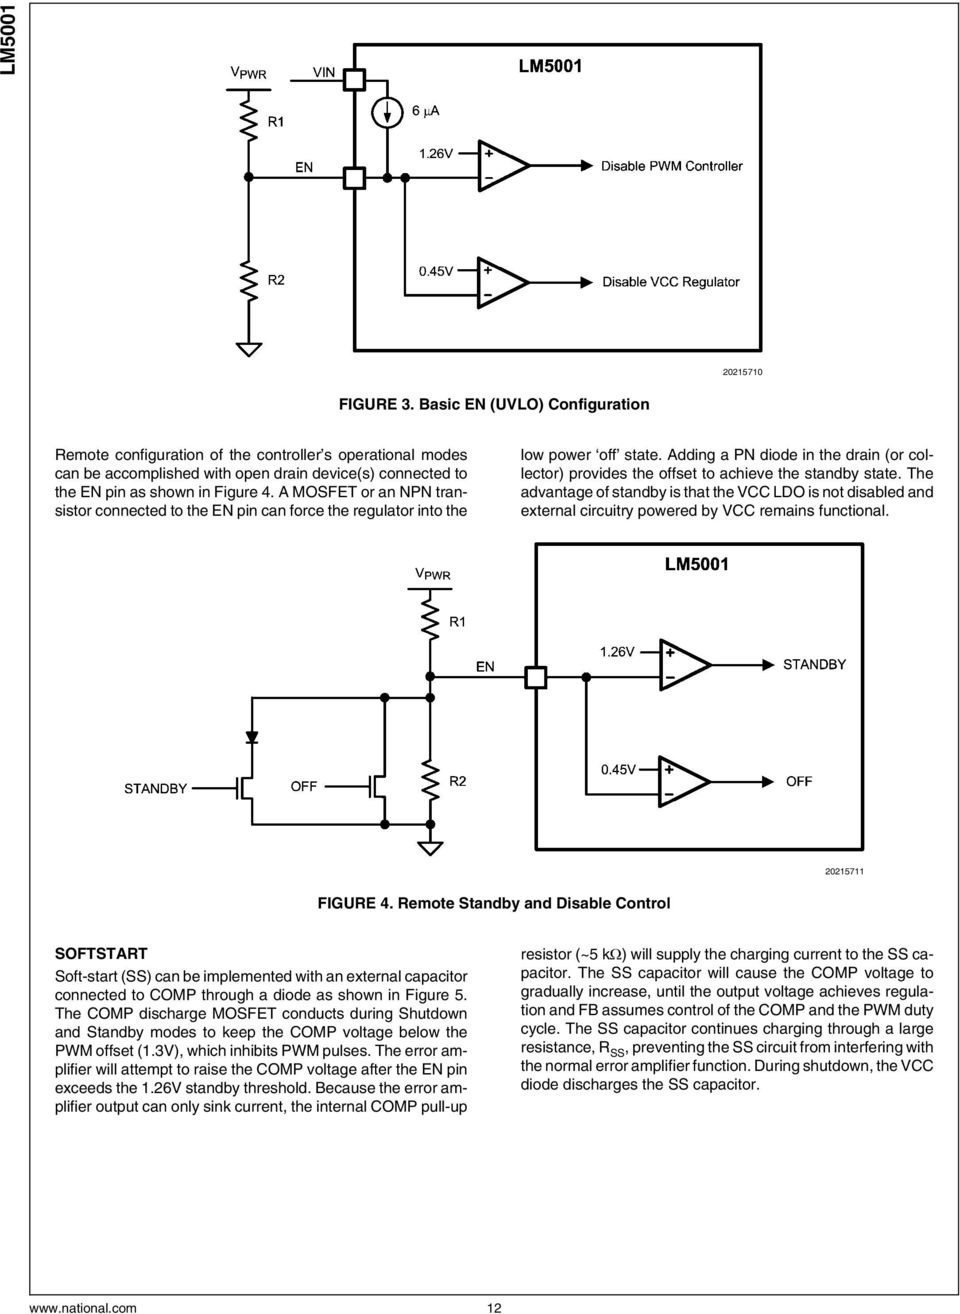 Lm5001 High Voltage Switch Mode Regulator Pdf With Shutdown Digital Wiring Diagram Schematic Adding A Pn Diode In The Drain Or Collector Provides Offset To Achieve